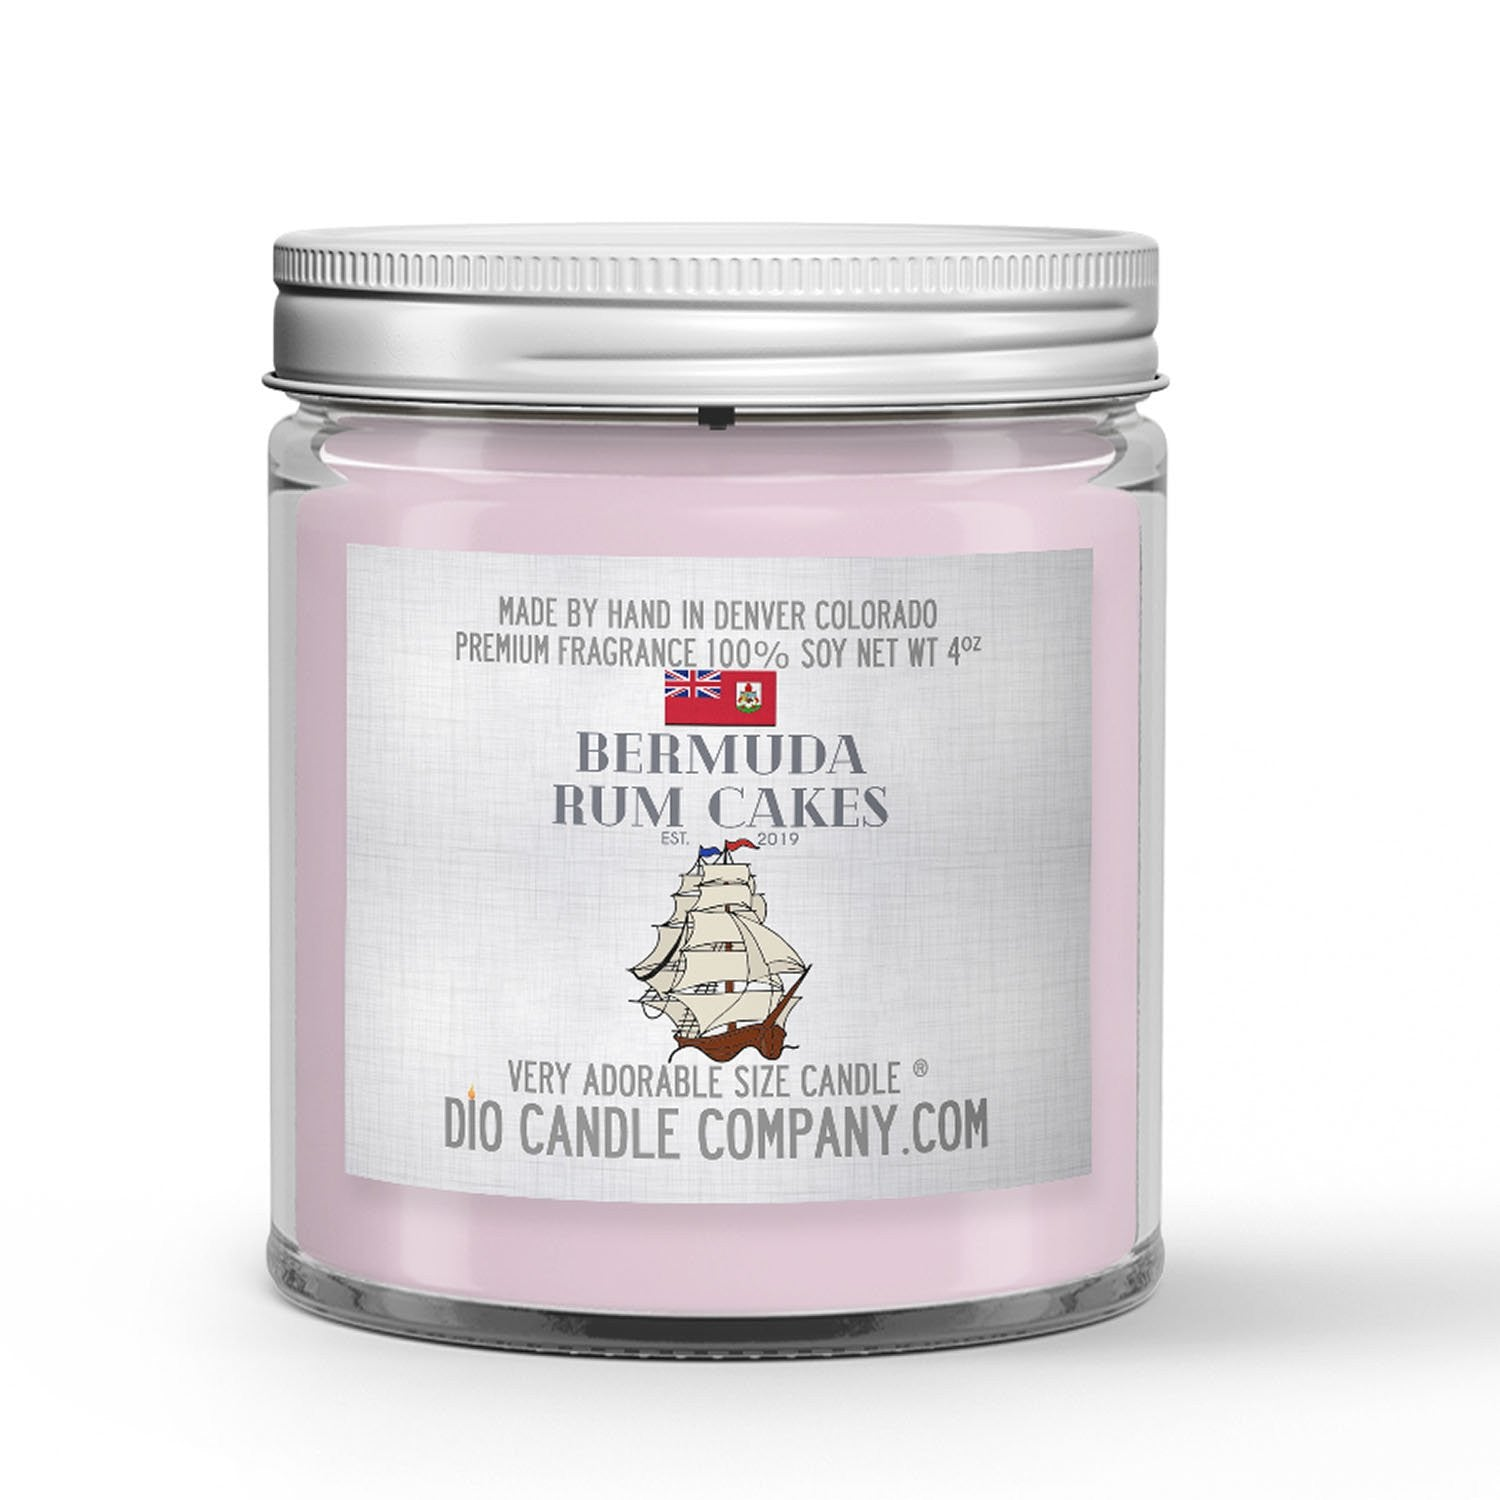 Bermuda Rum Cakes Candles and Wax Melts